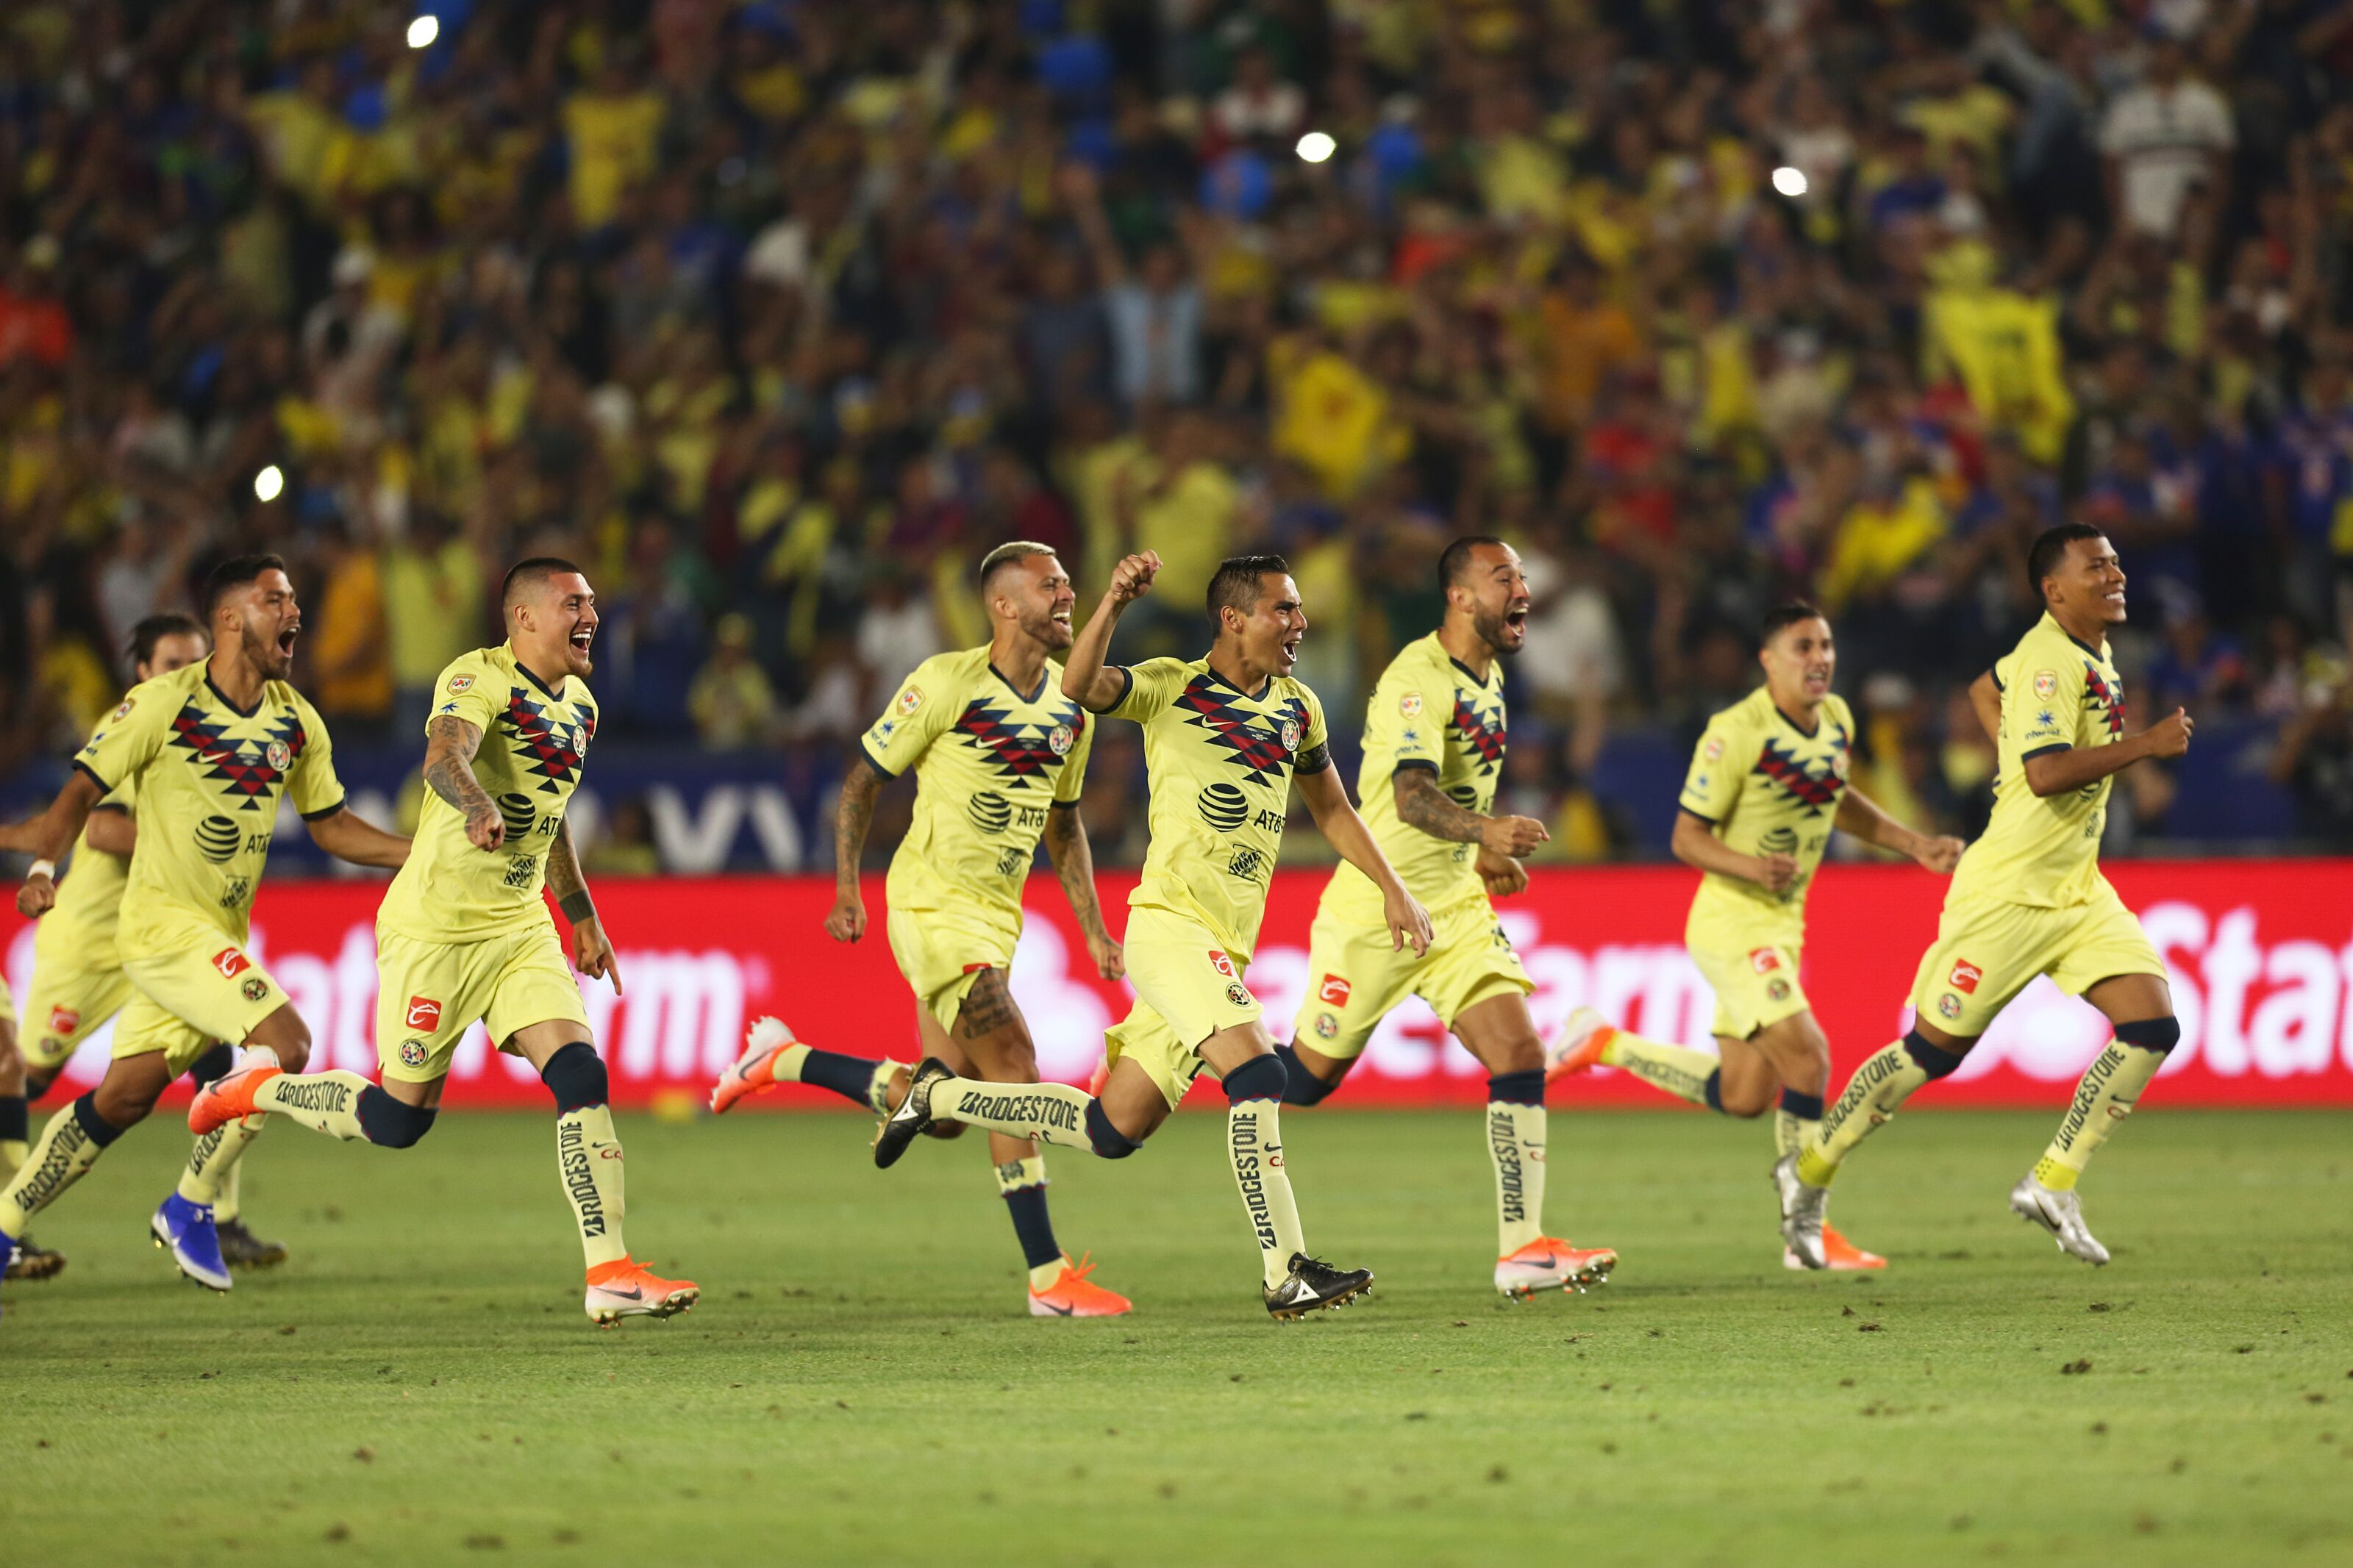 'Marche' kicks América past Tigres in Champions Cup shoot-out